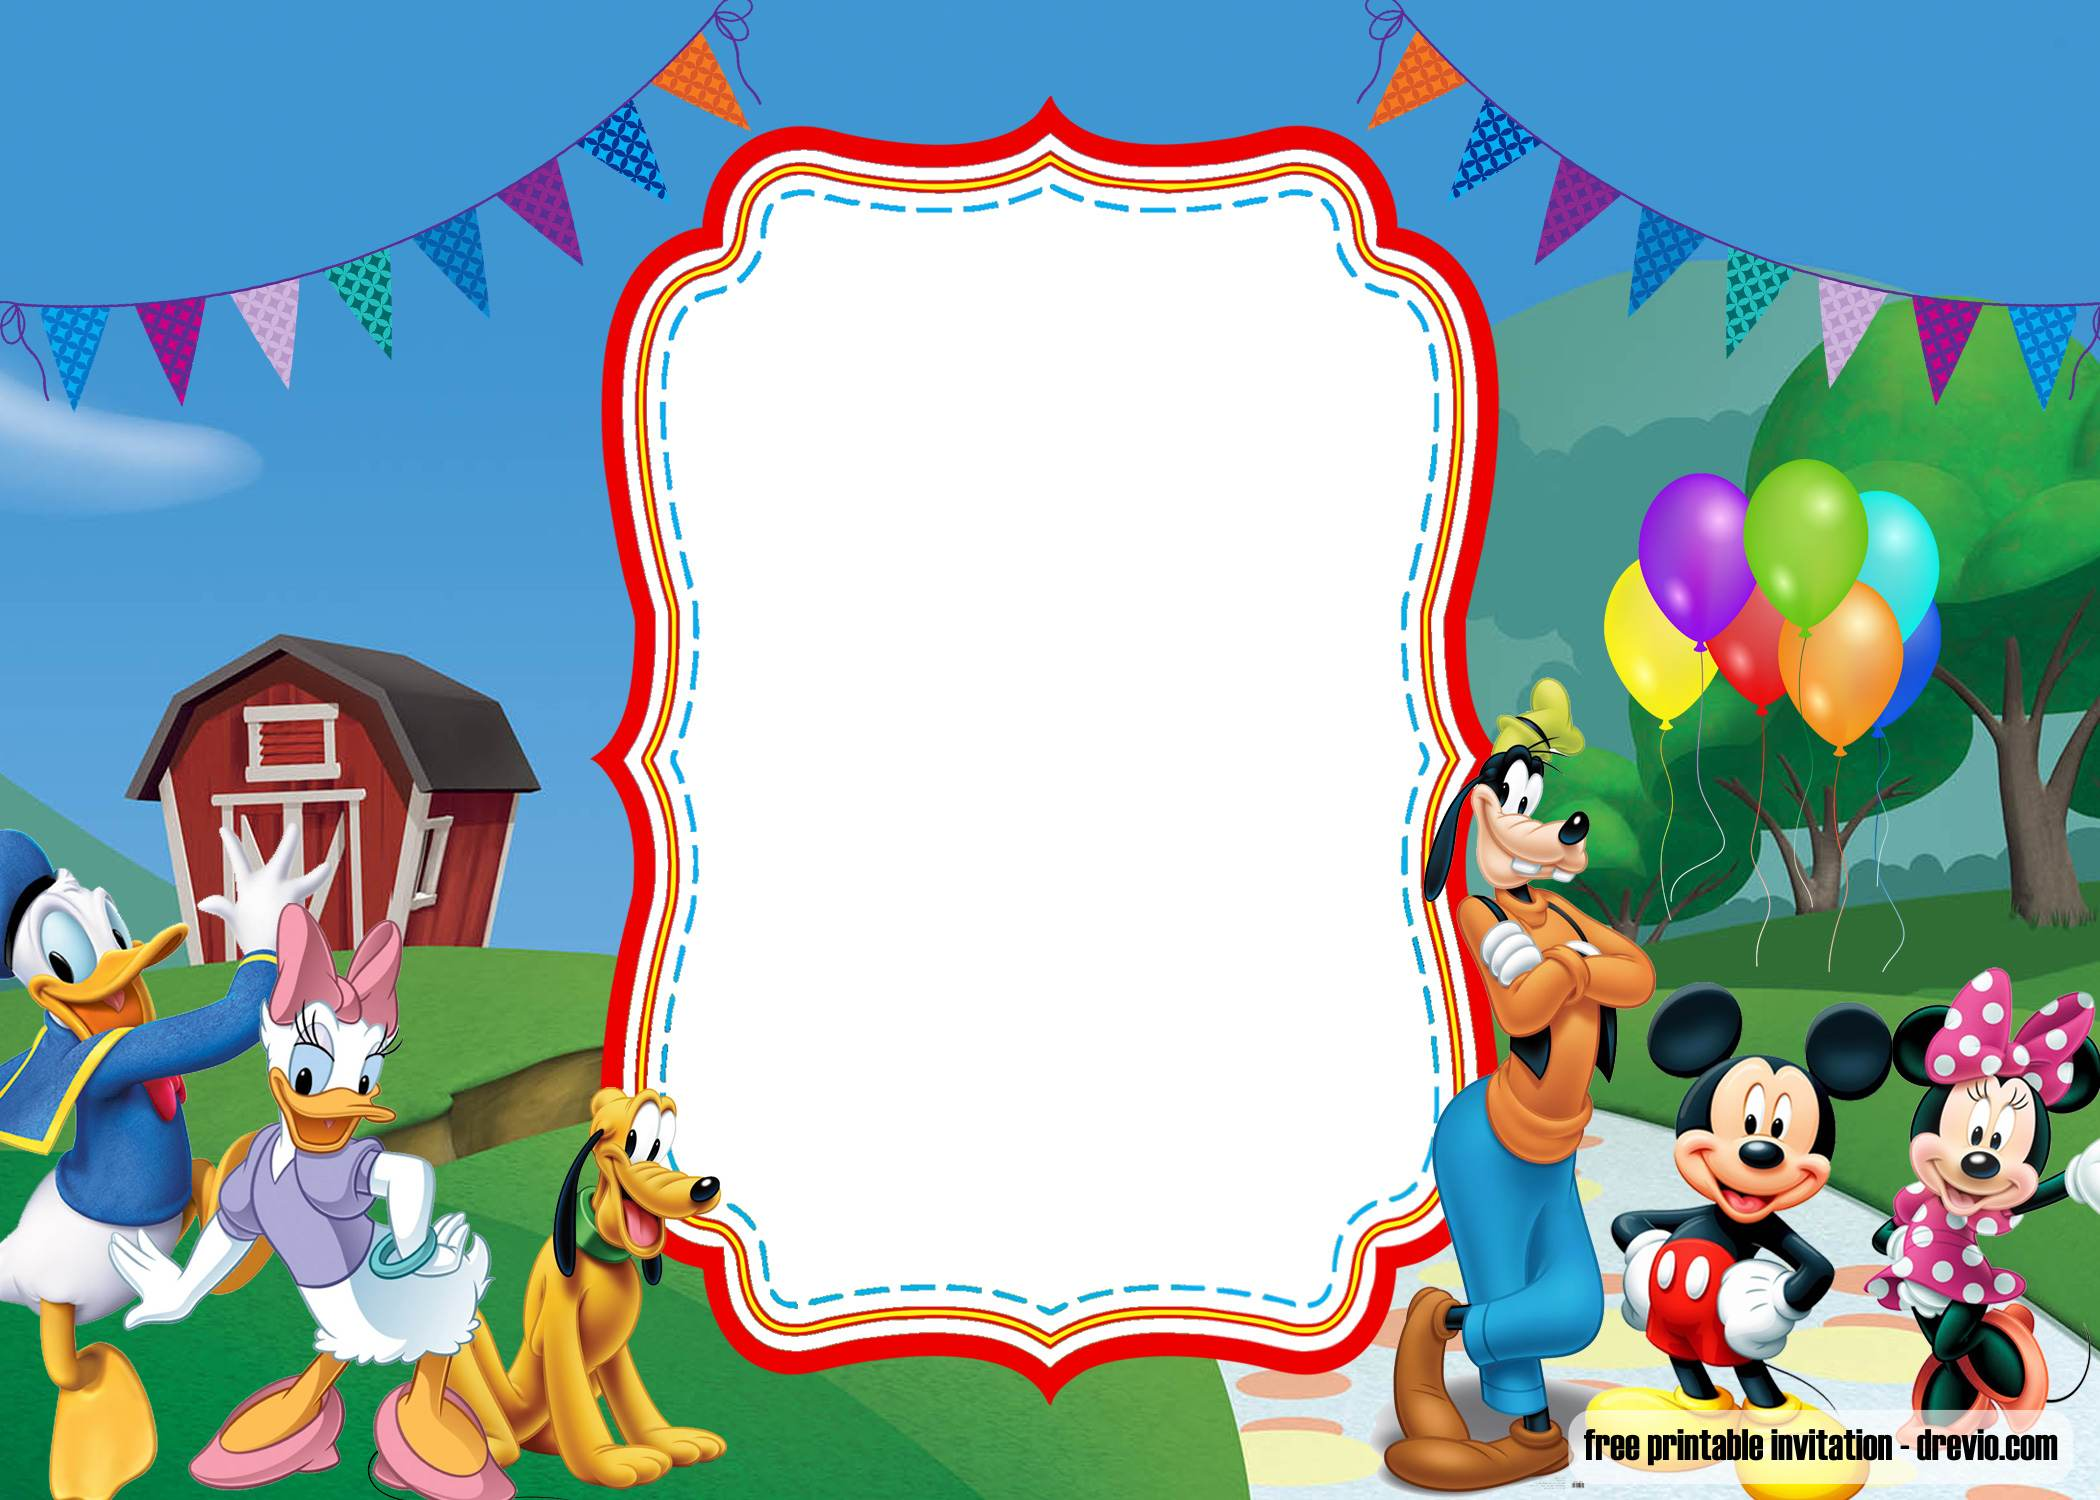 graphic about Printable Luau Invitations referred to as Totally free Printable Mickey Mouse Luau invitation template Free of charge